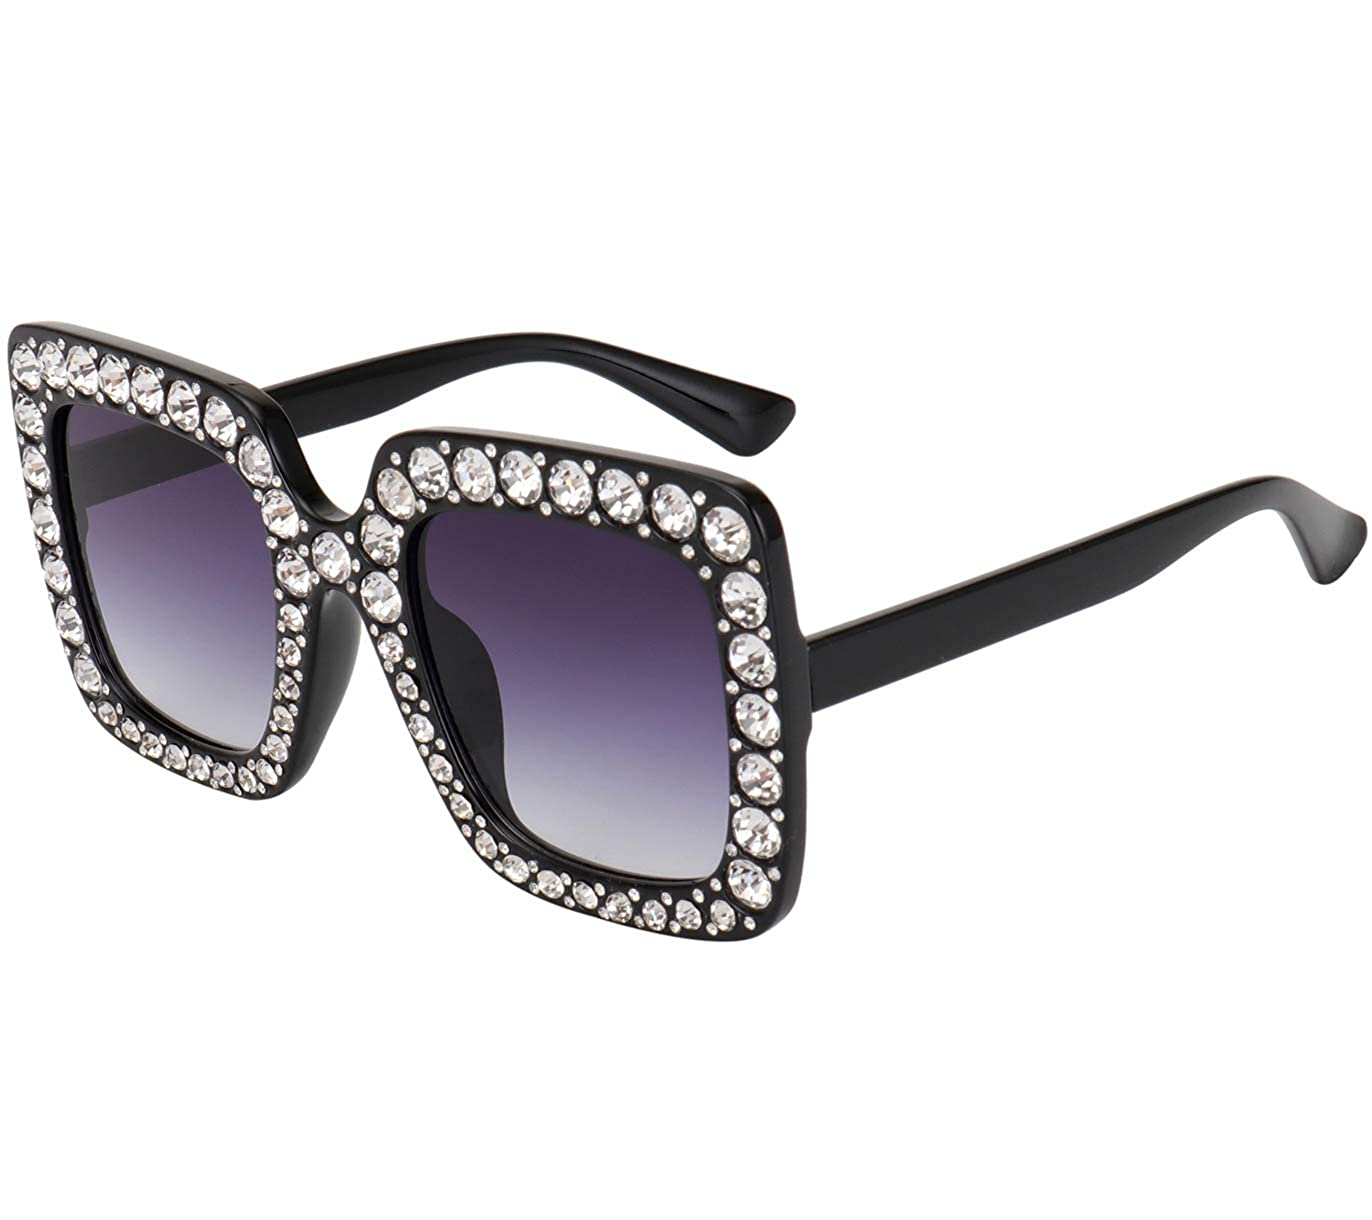 ROYAL GIRL Elton Square Rhinestone Sunglasses Oversized Diamond Bling Bling Glasses